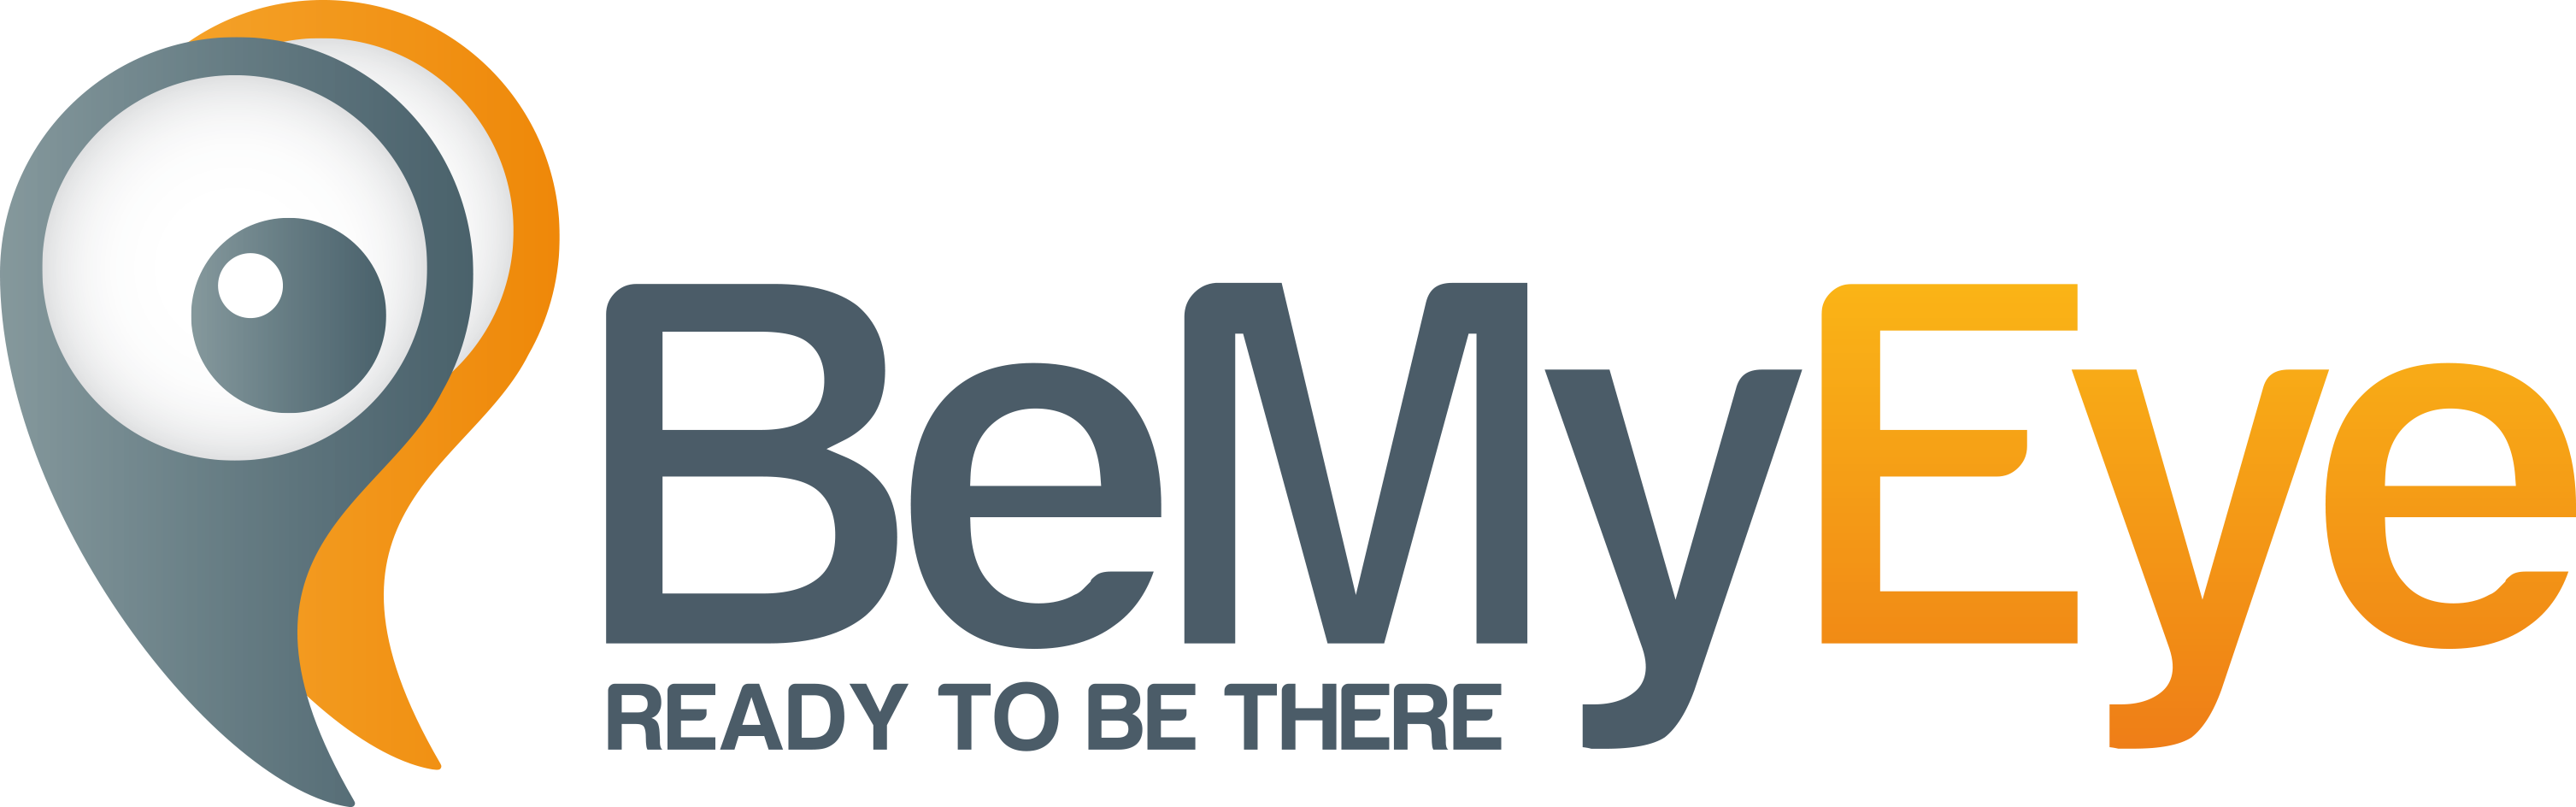 BeMyEye Support Help Center home page